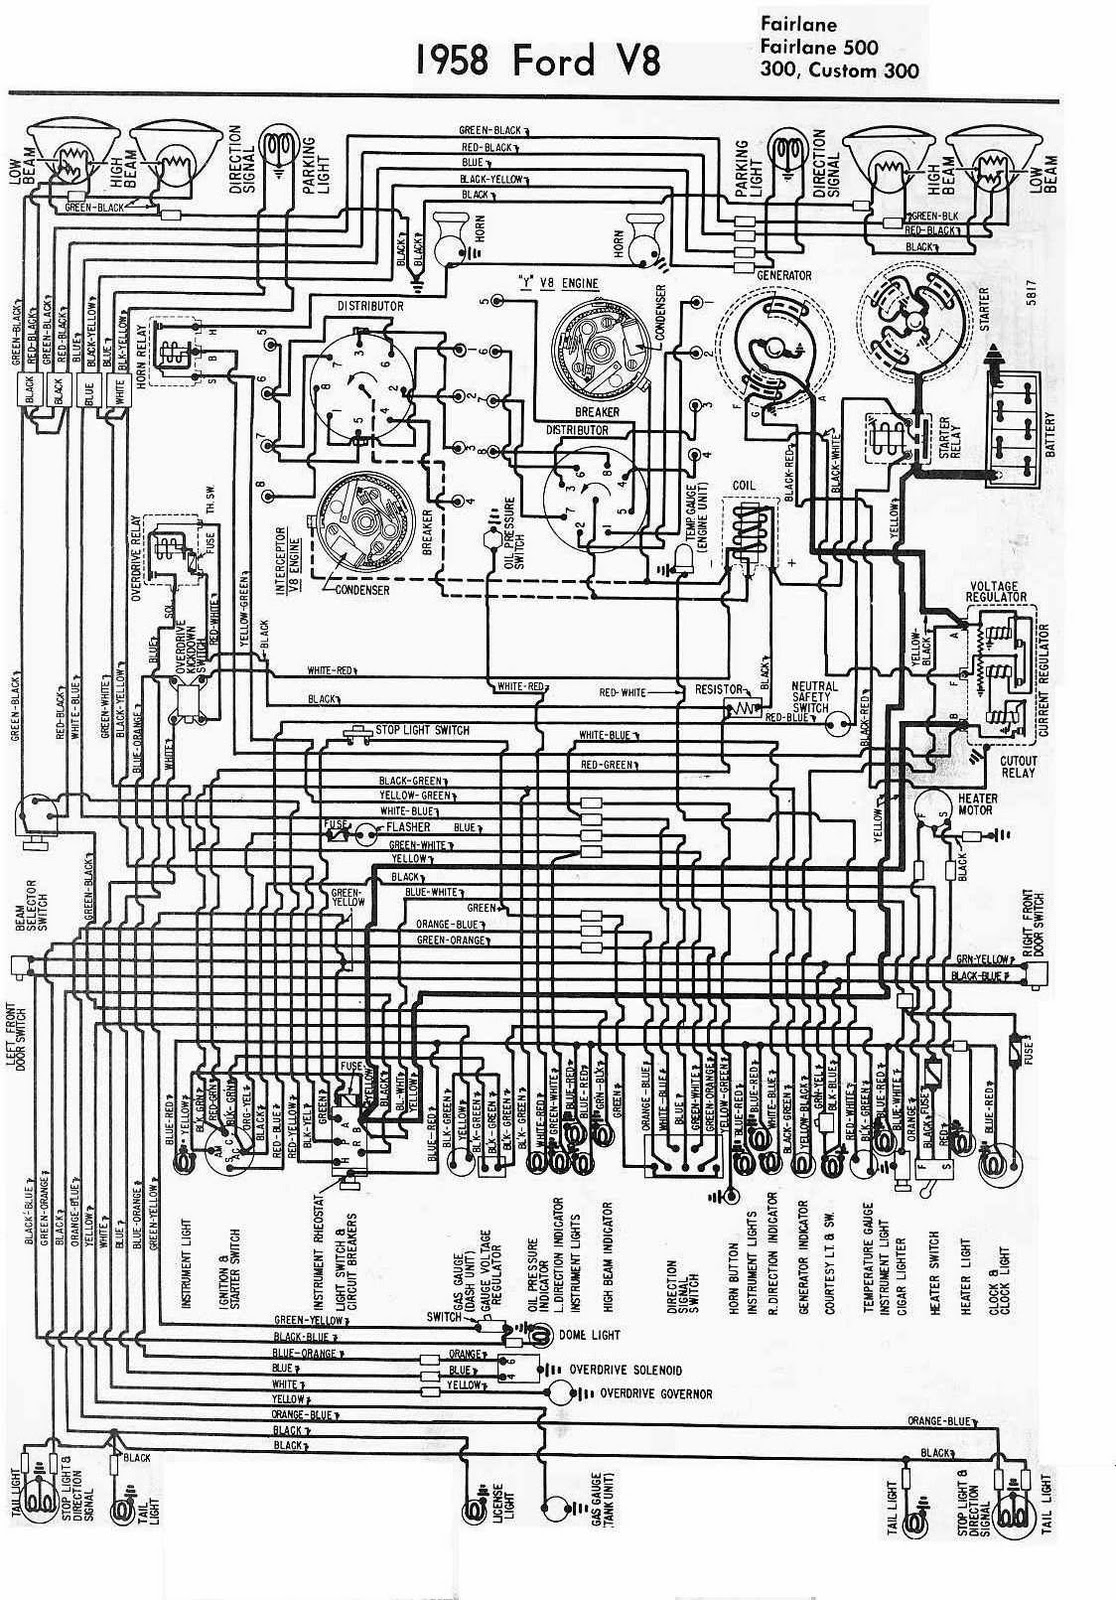 1929 ford electrical wiring ford factory wiring diagrams wiring diagram ford f250 the wiring diagram ford f250 wiring diagram nodasystech